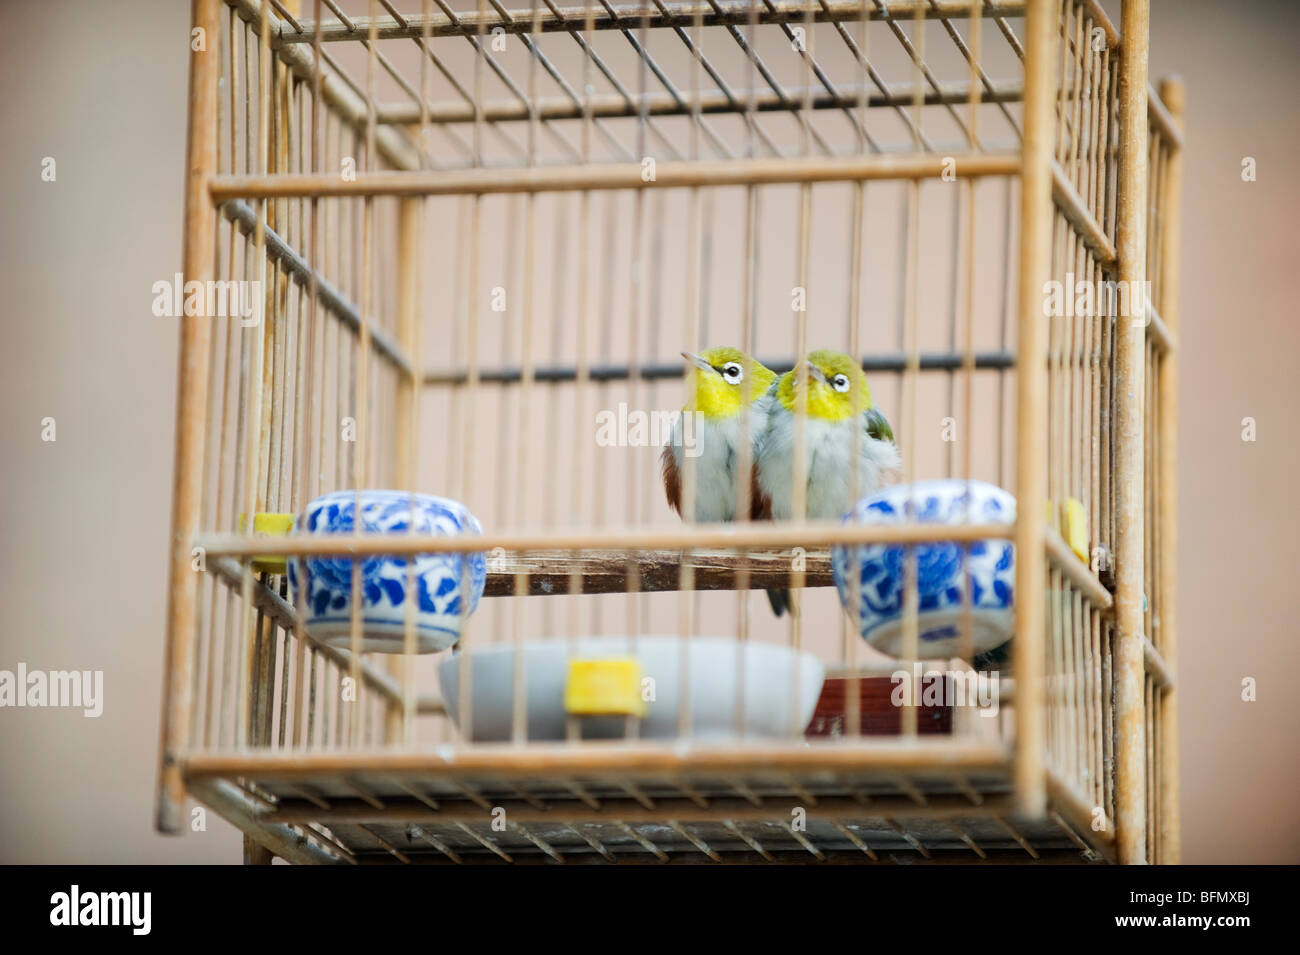 China, Shaanxi Province, Xian, birds in a cage - Stock Image